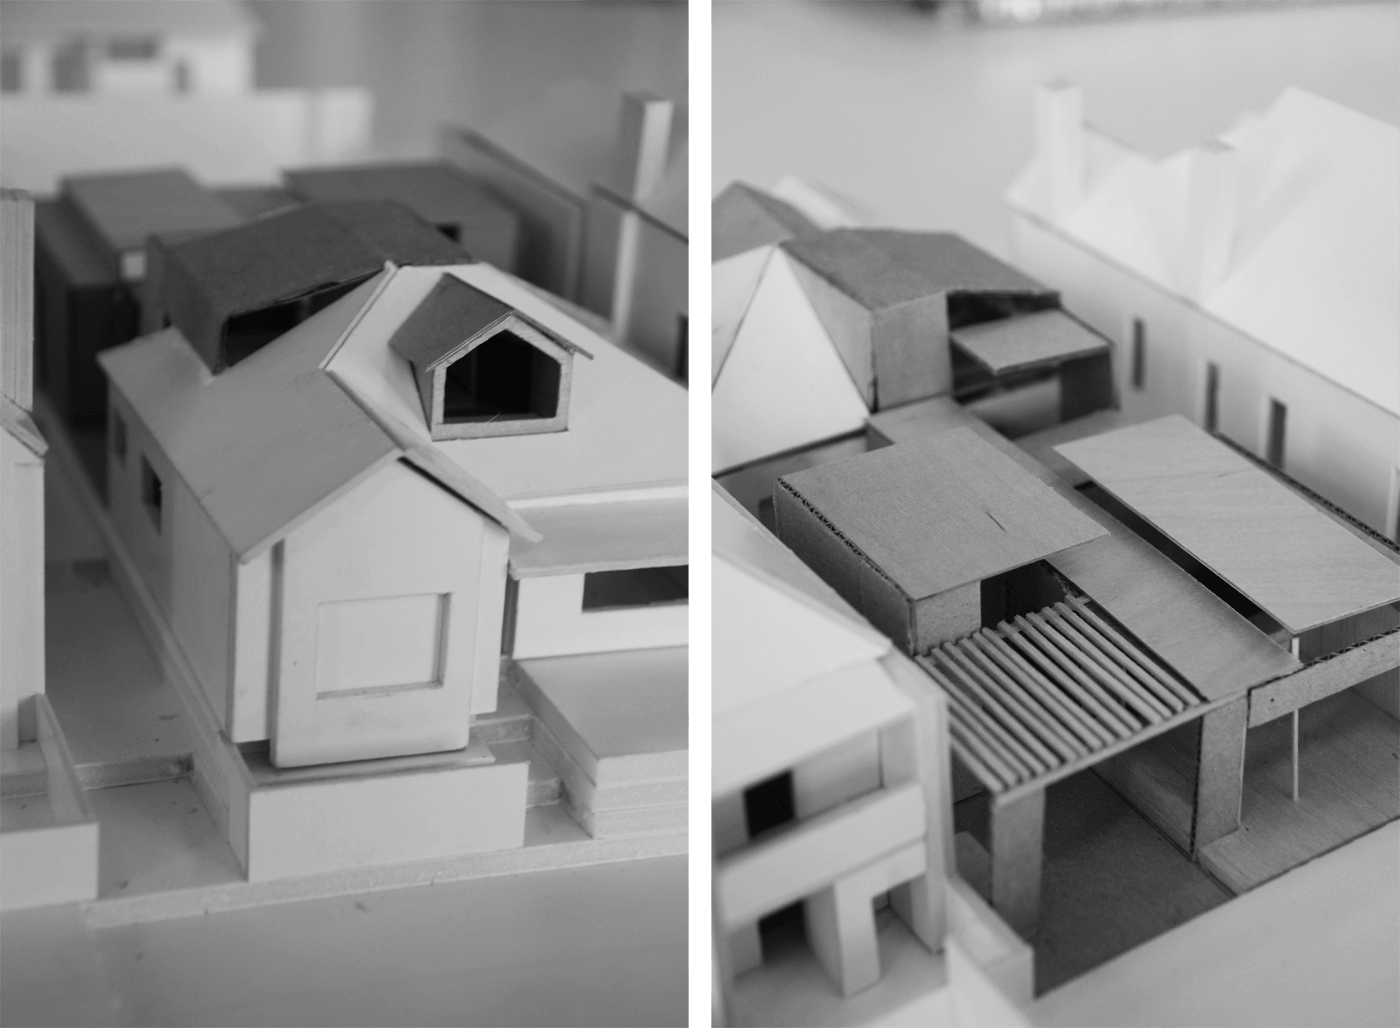 Smee Schoff House by Sam Crawford Architects, photos of hand built balsa models.